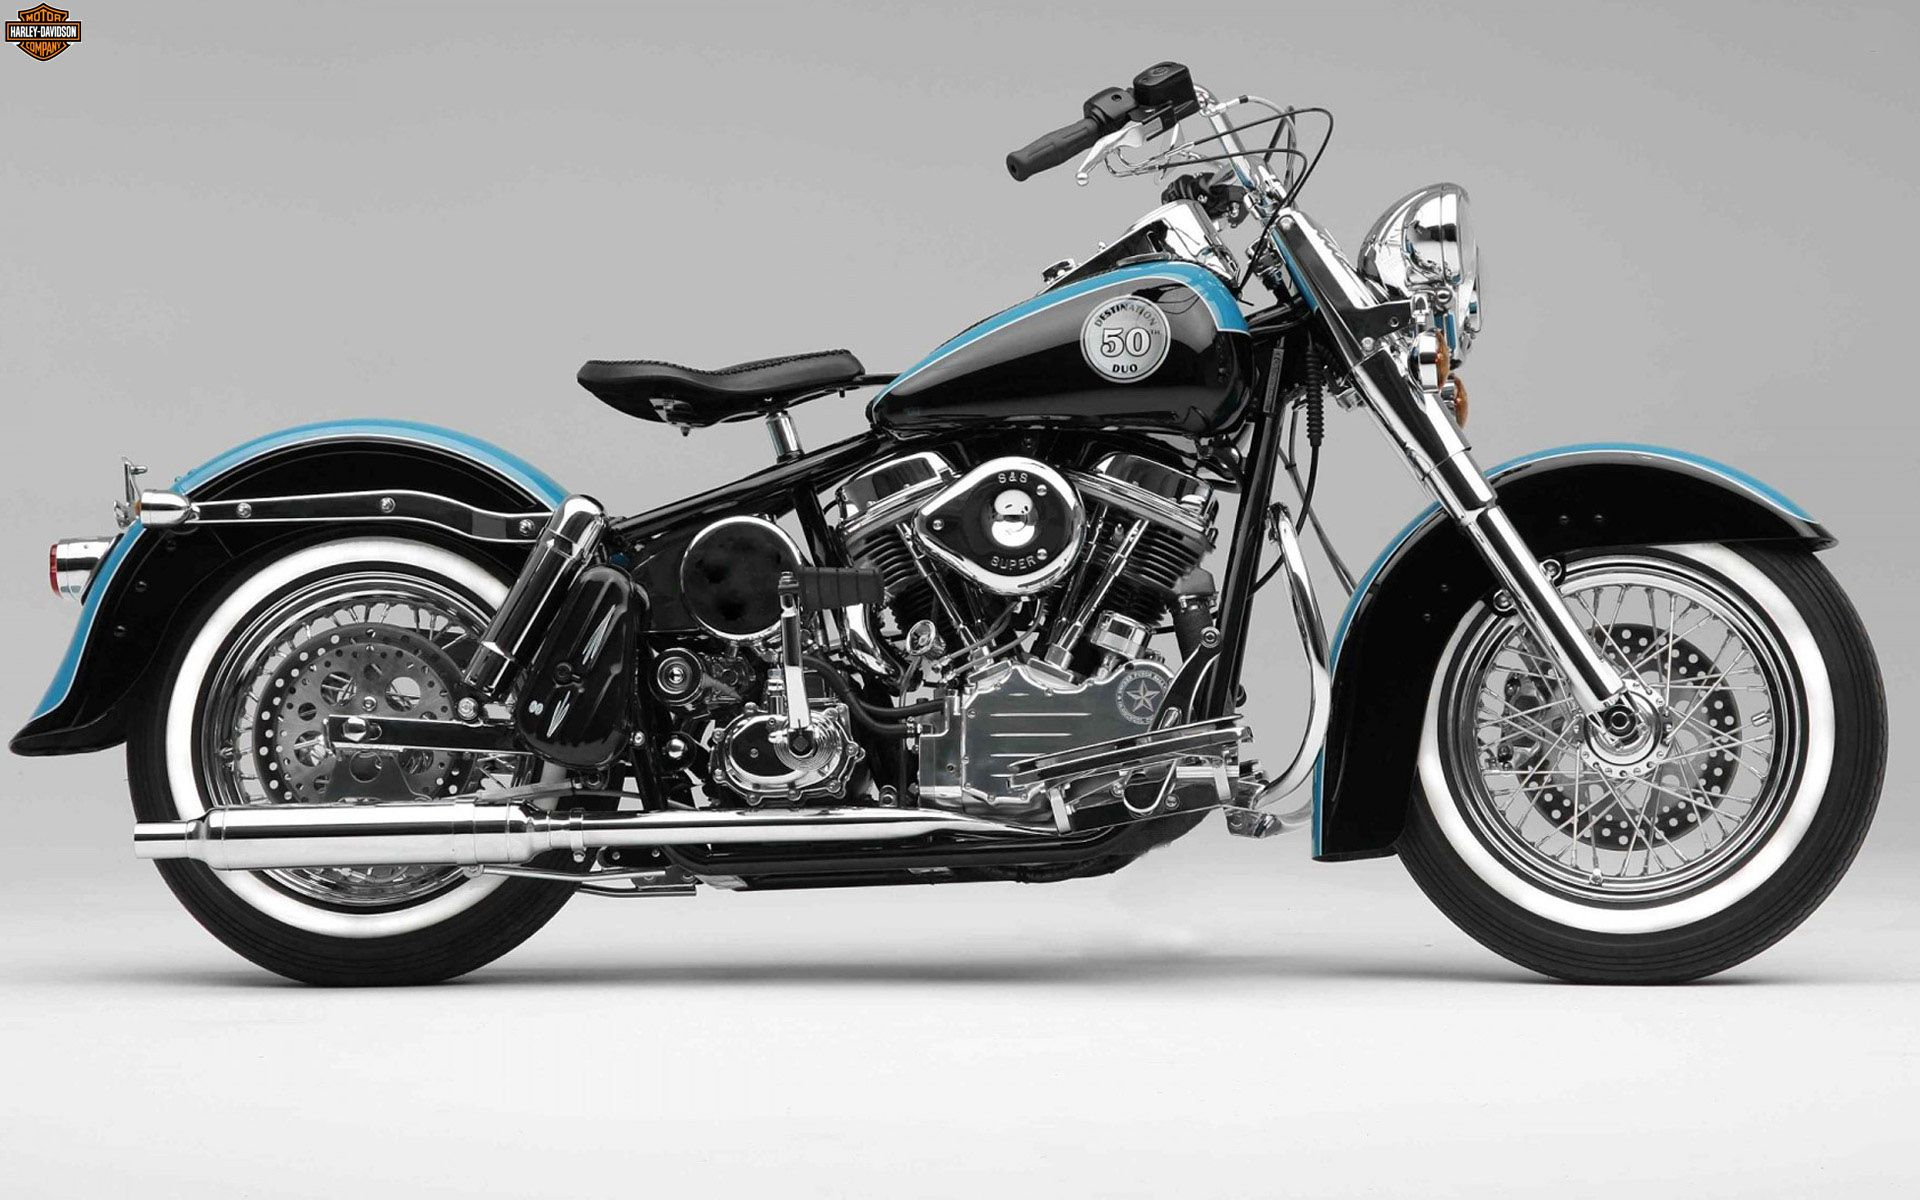 Harley Davidson Most Beautiful Wallpapers Harley Davidson Wallpaper Harley Davidson Motorcycles Classic Harley Davidson